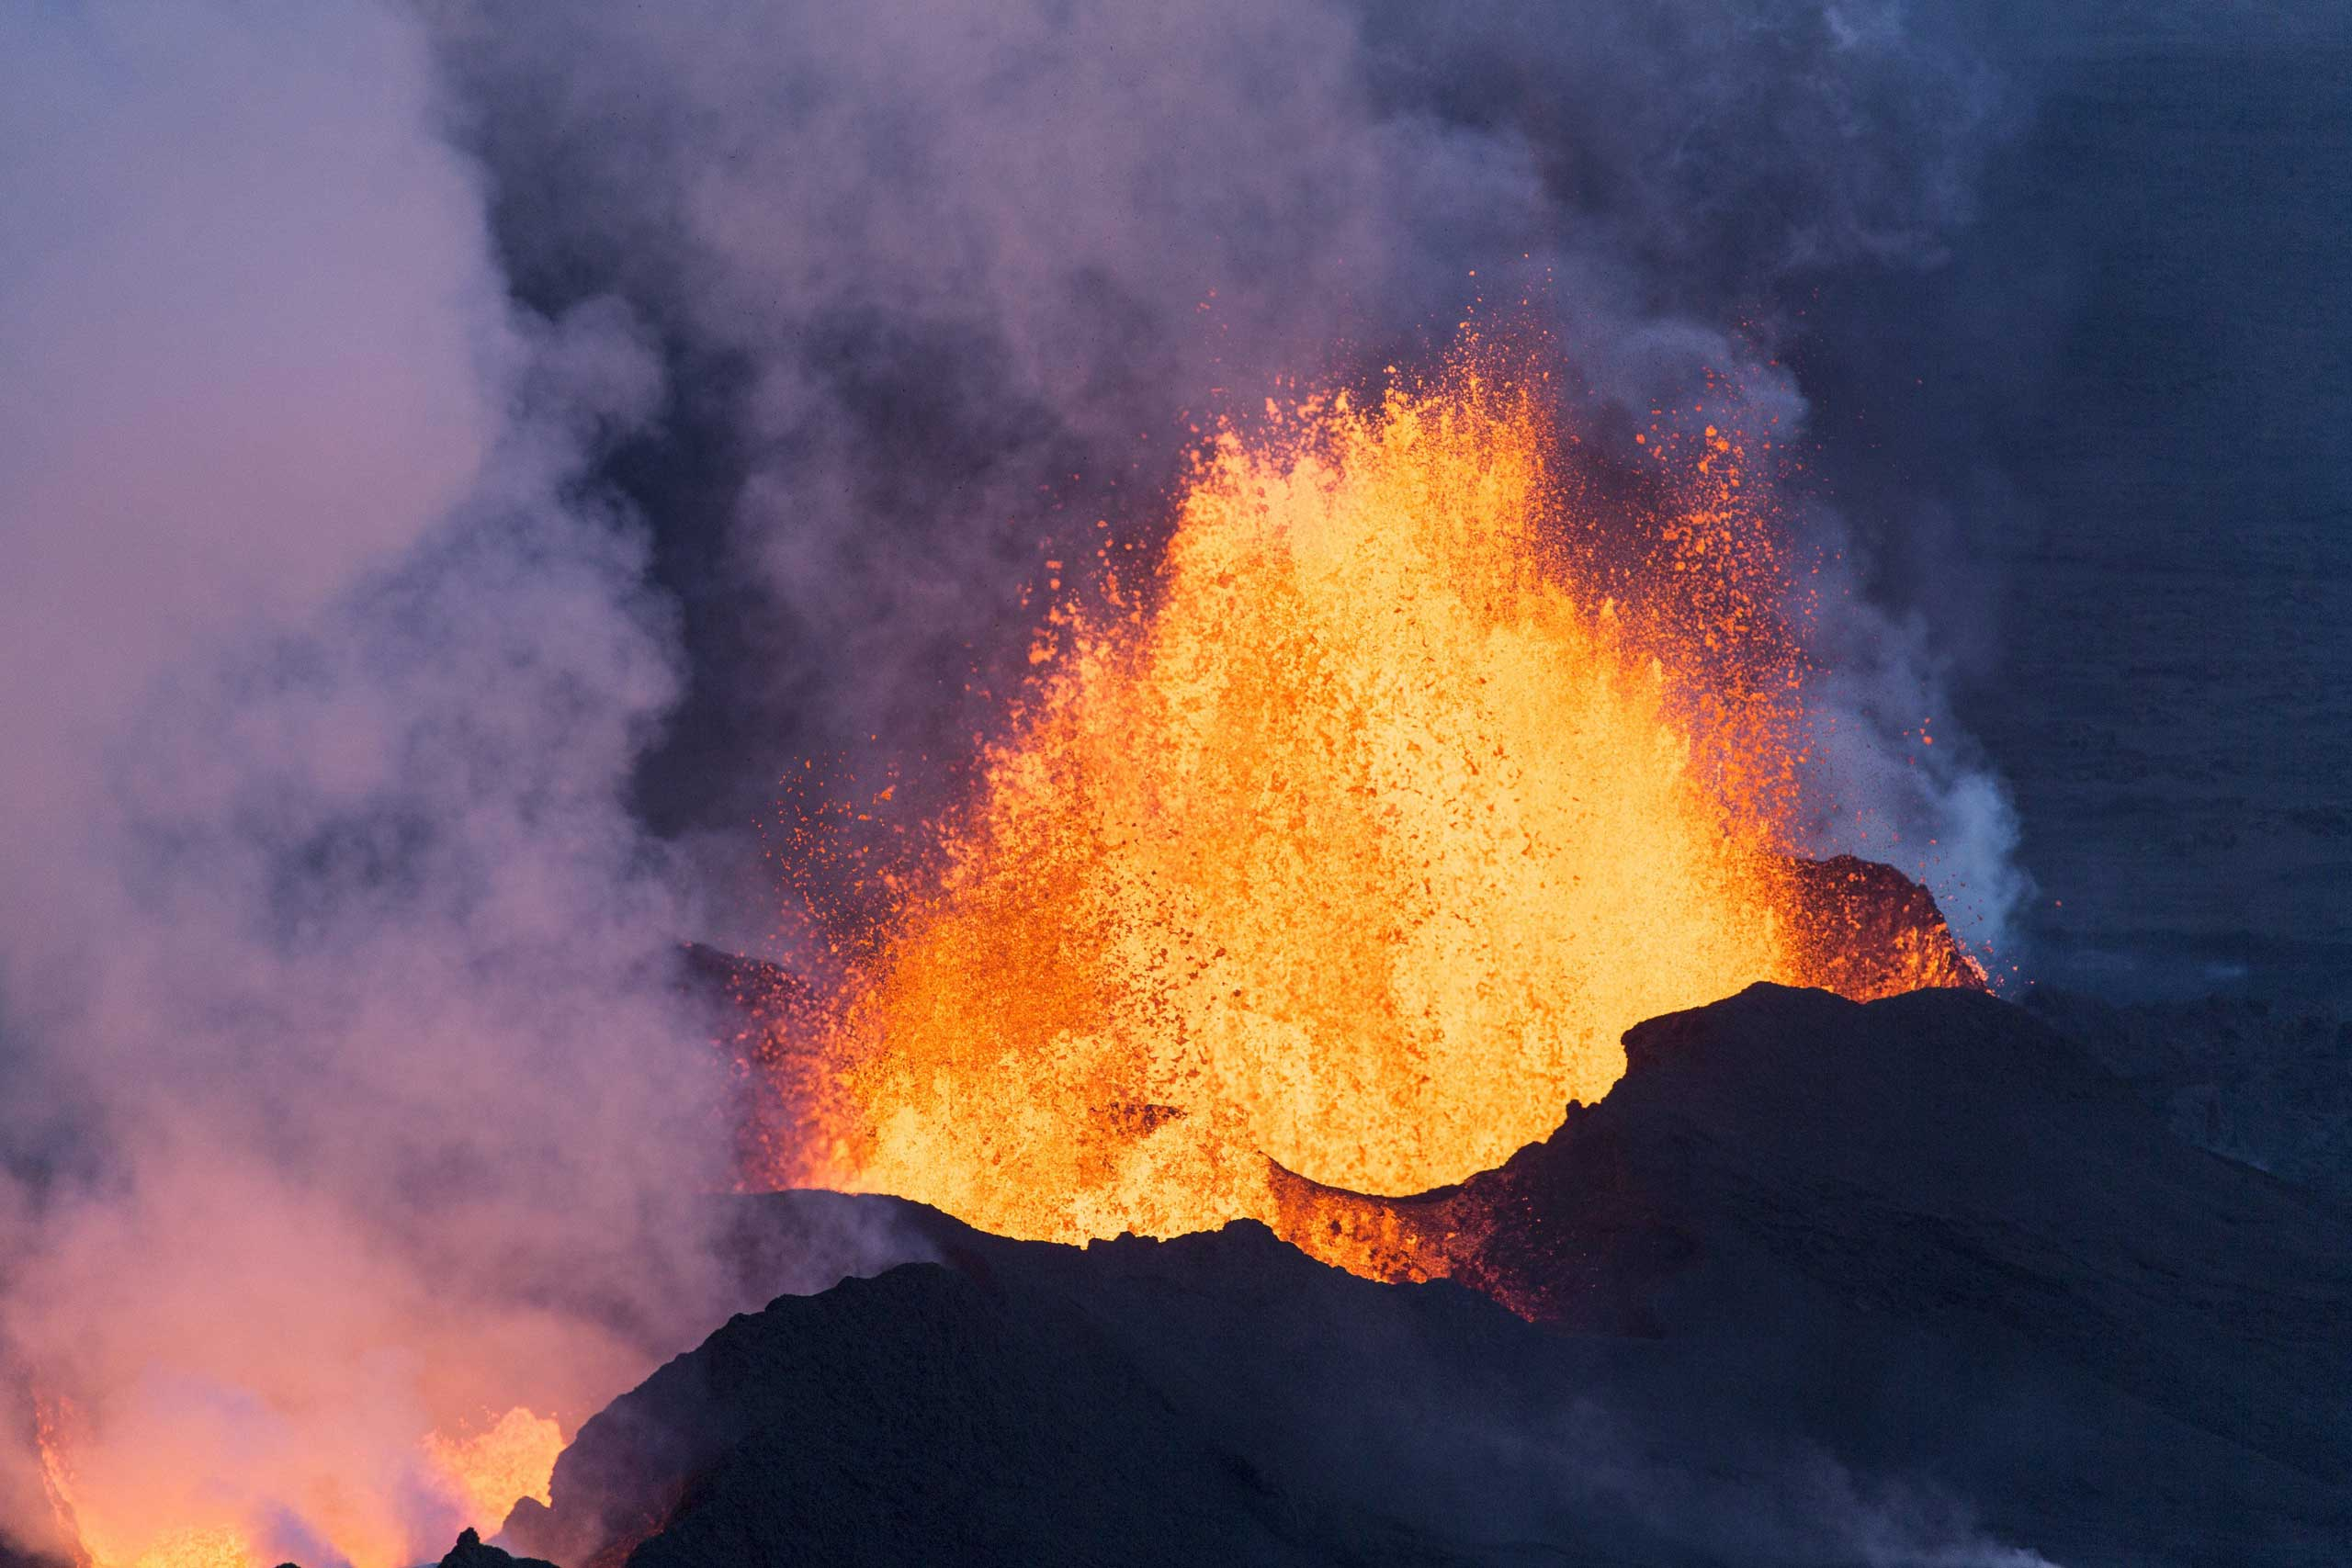 <b>Iceland Volcano</b> The Bardarbunga volcano spews lava and smoke in southeast Iceland on Sept. 14, 2014.